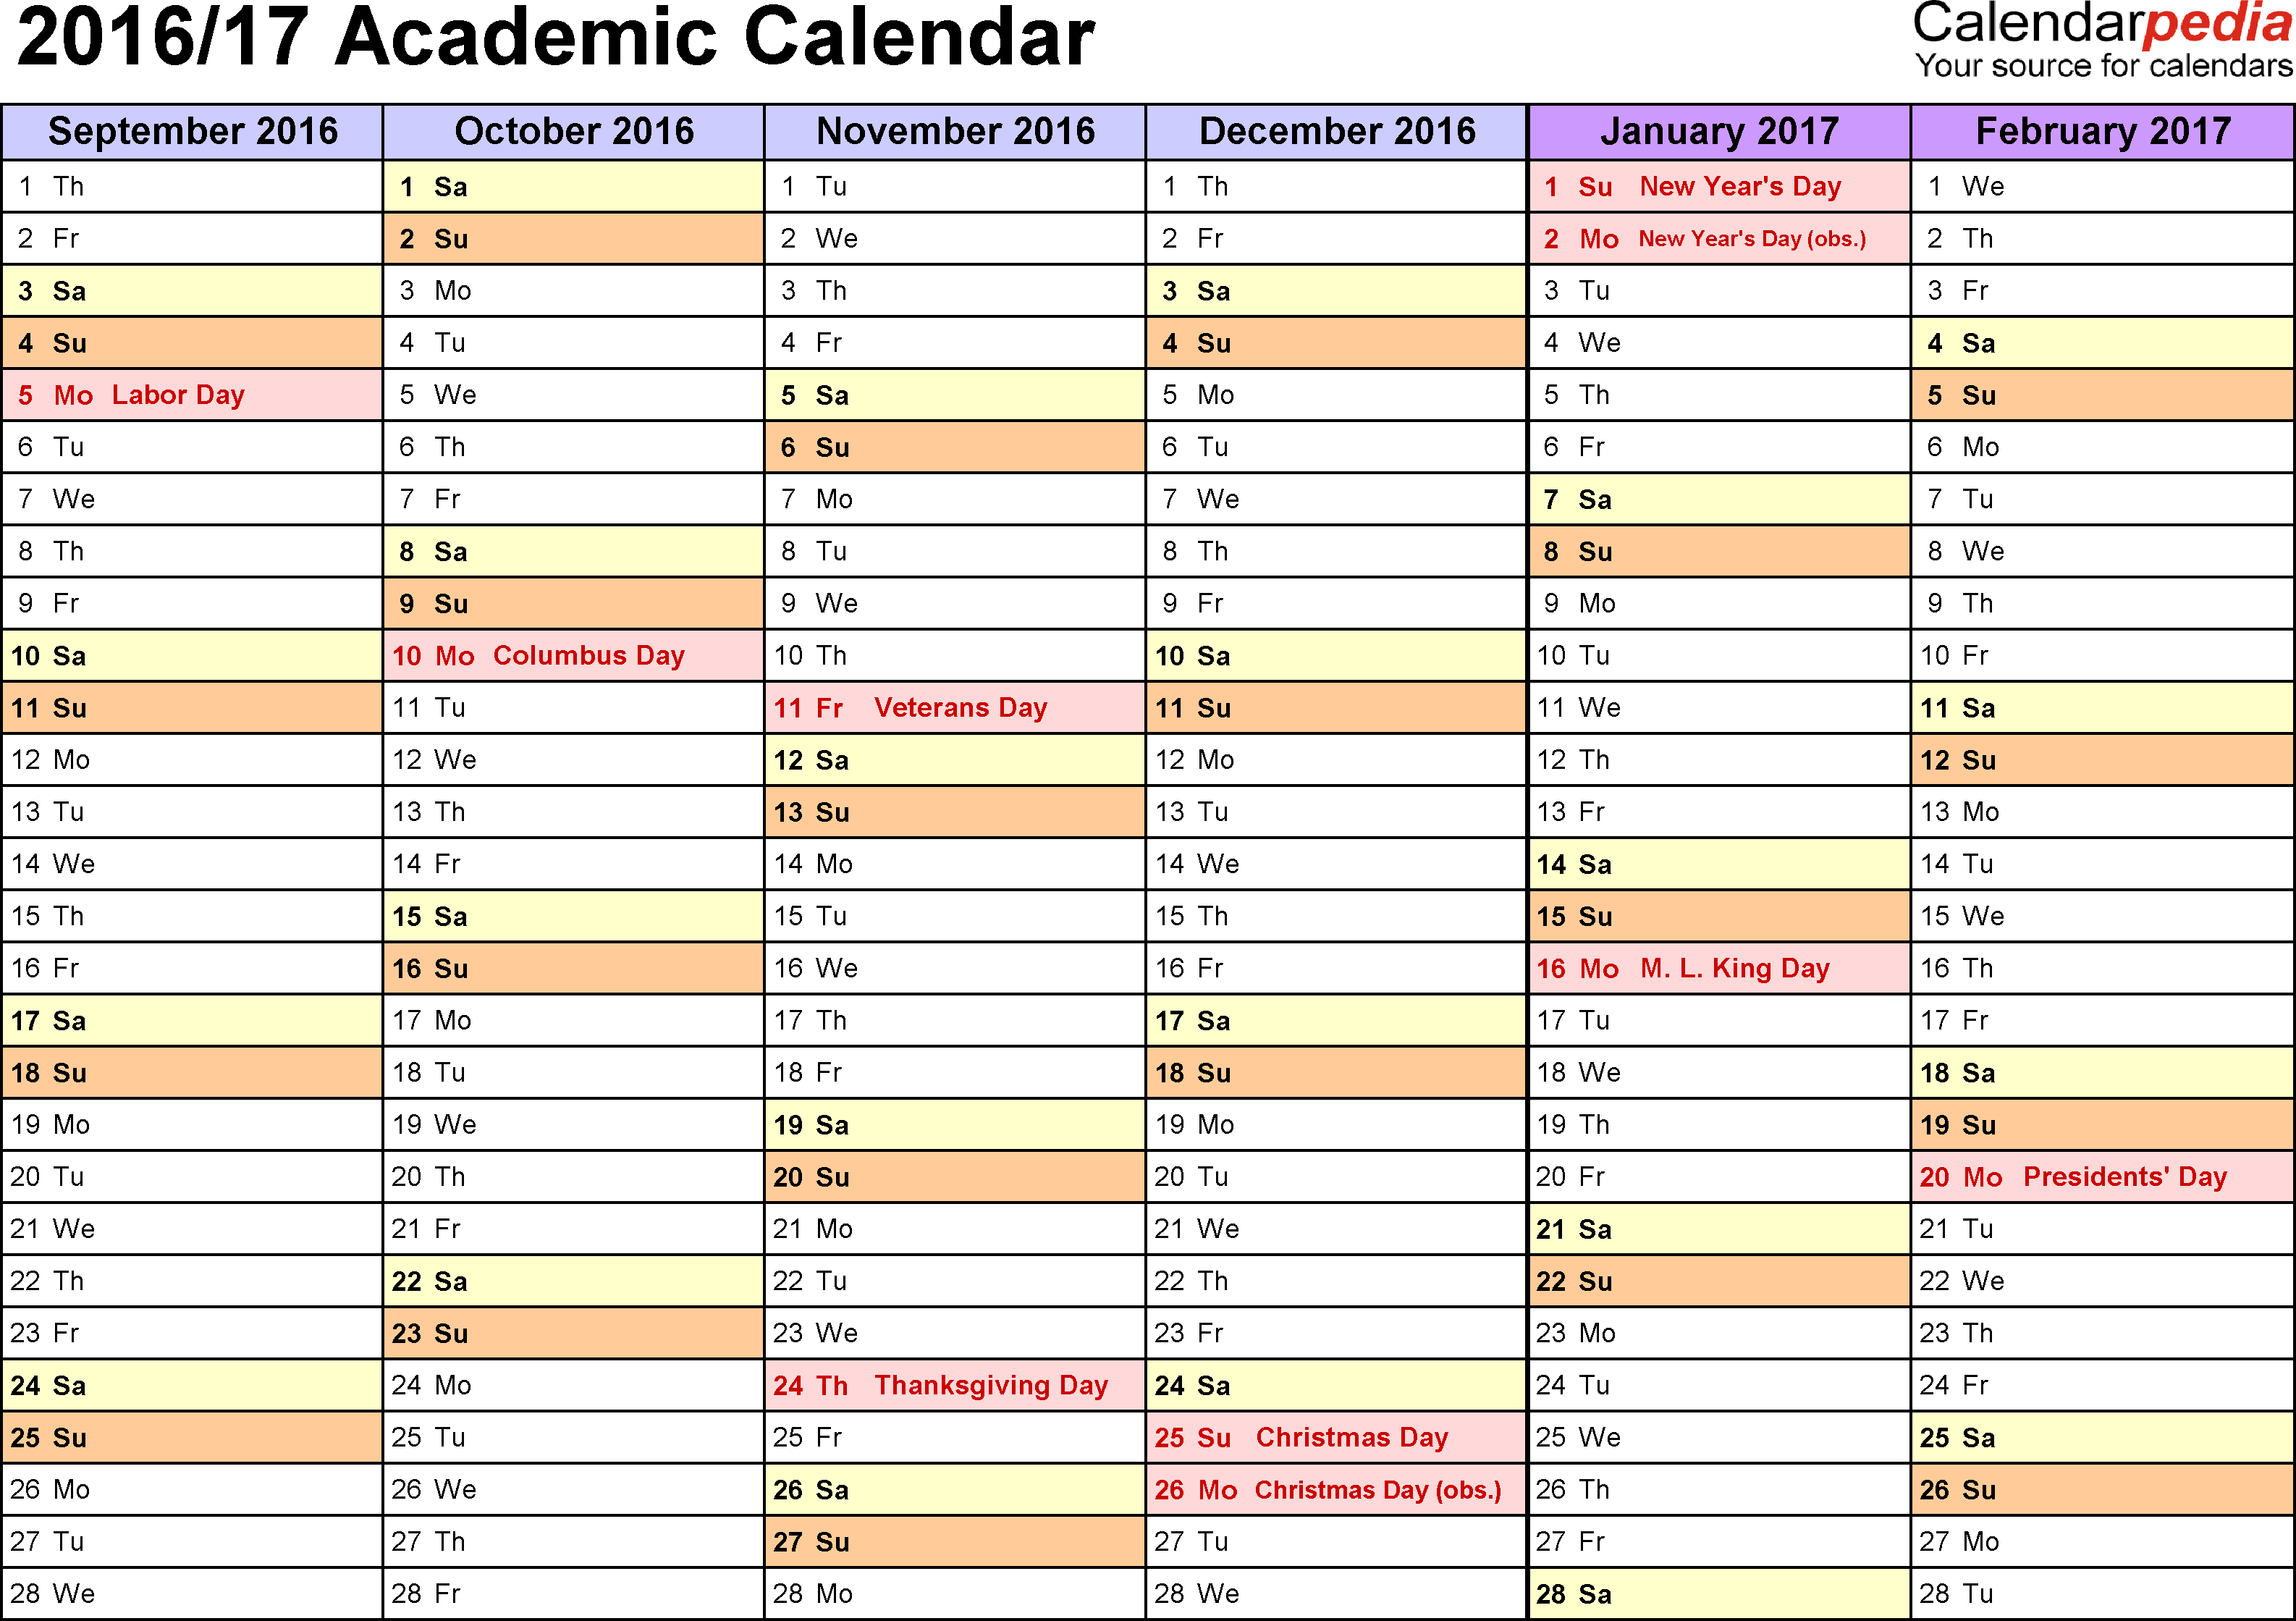 Template 3: Academic calendar 2016/17 for Excel, landscape orientation, months horizontally, 2 pages